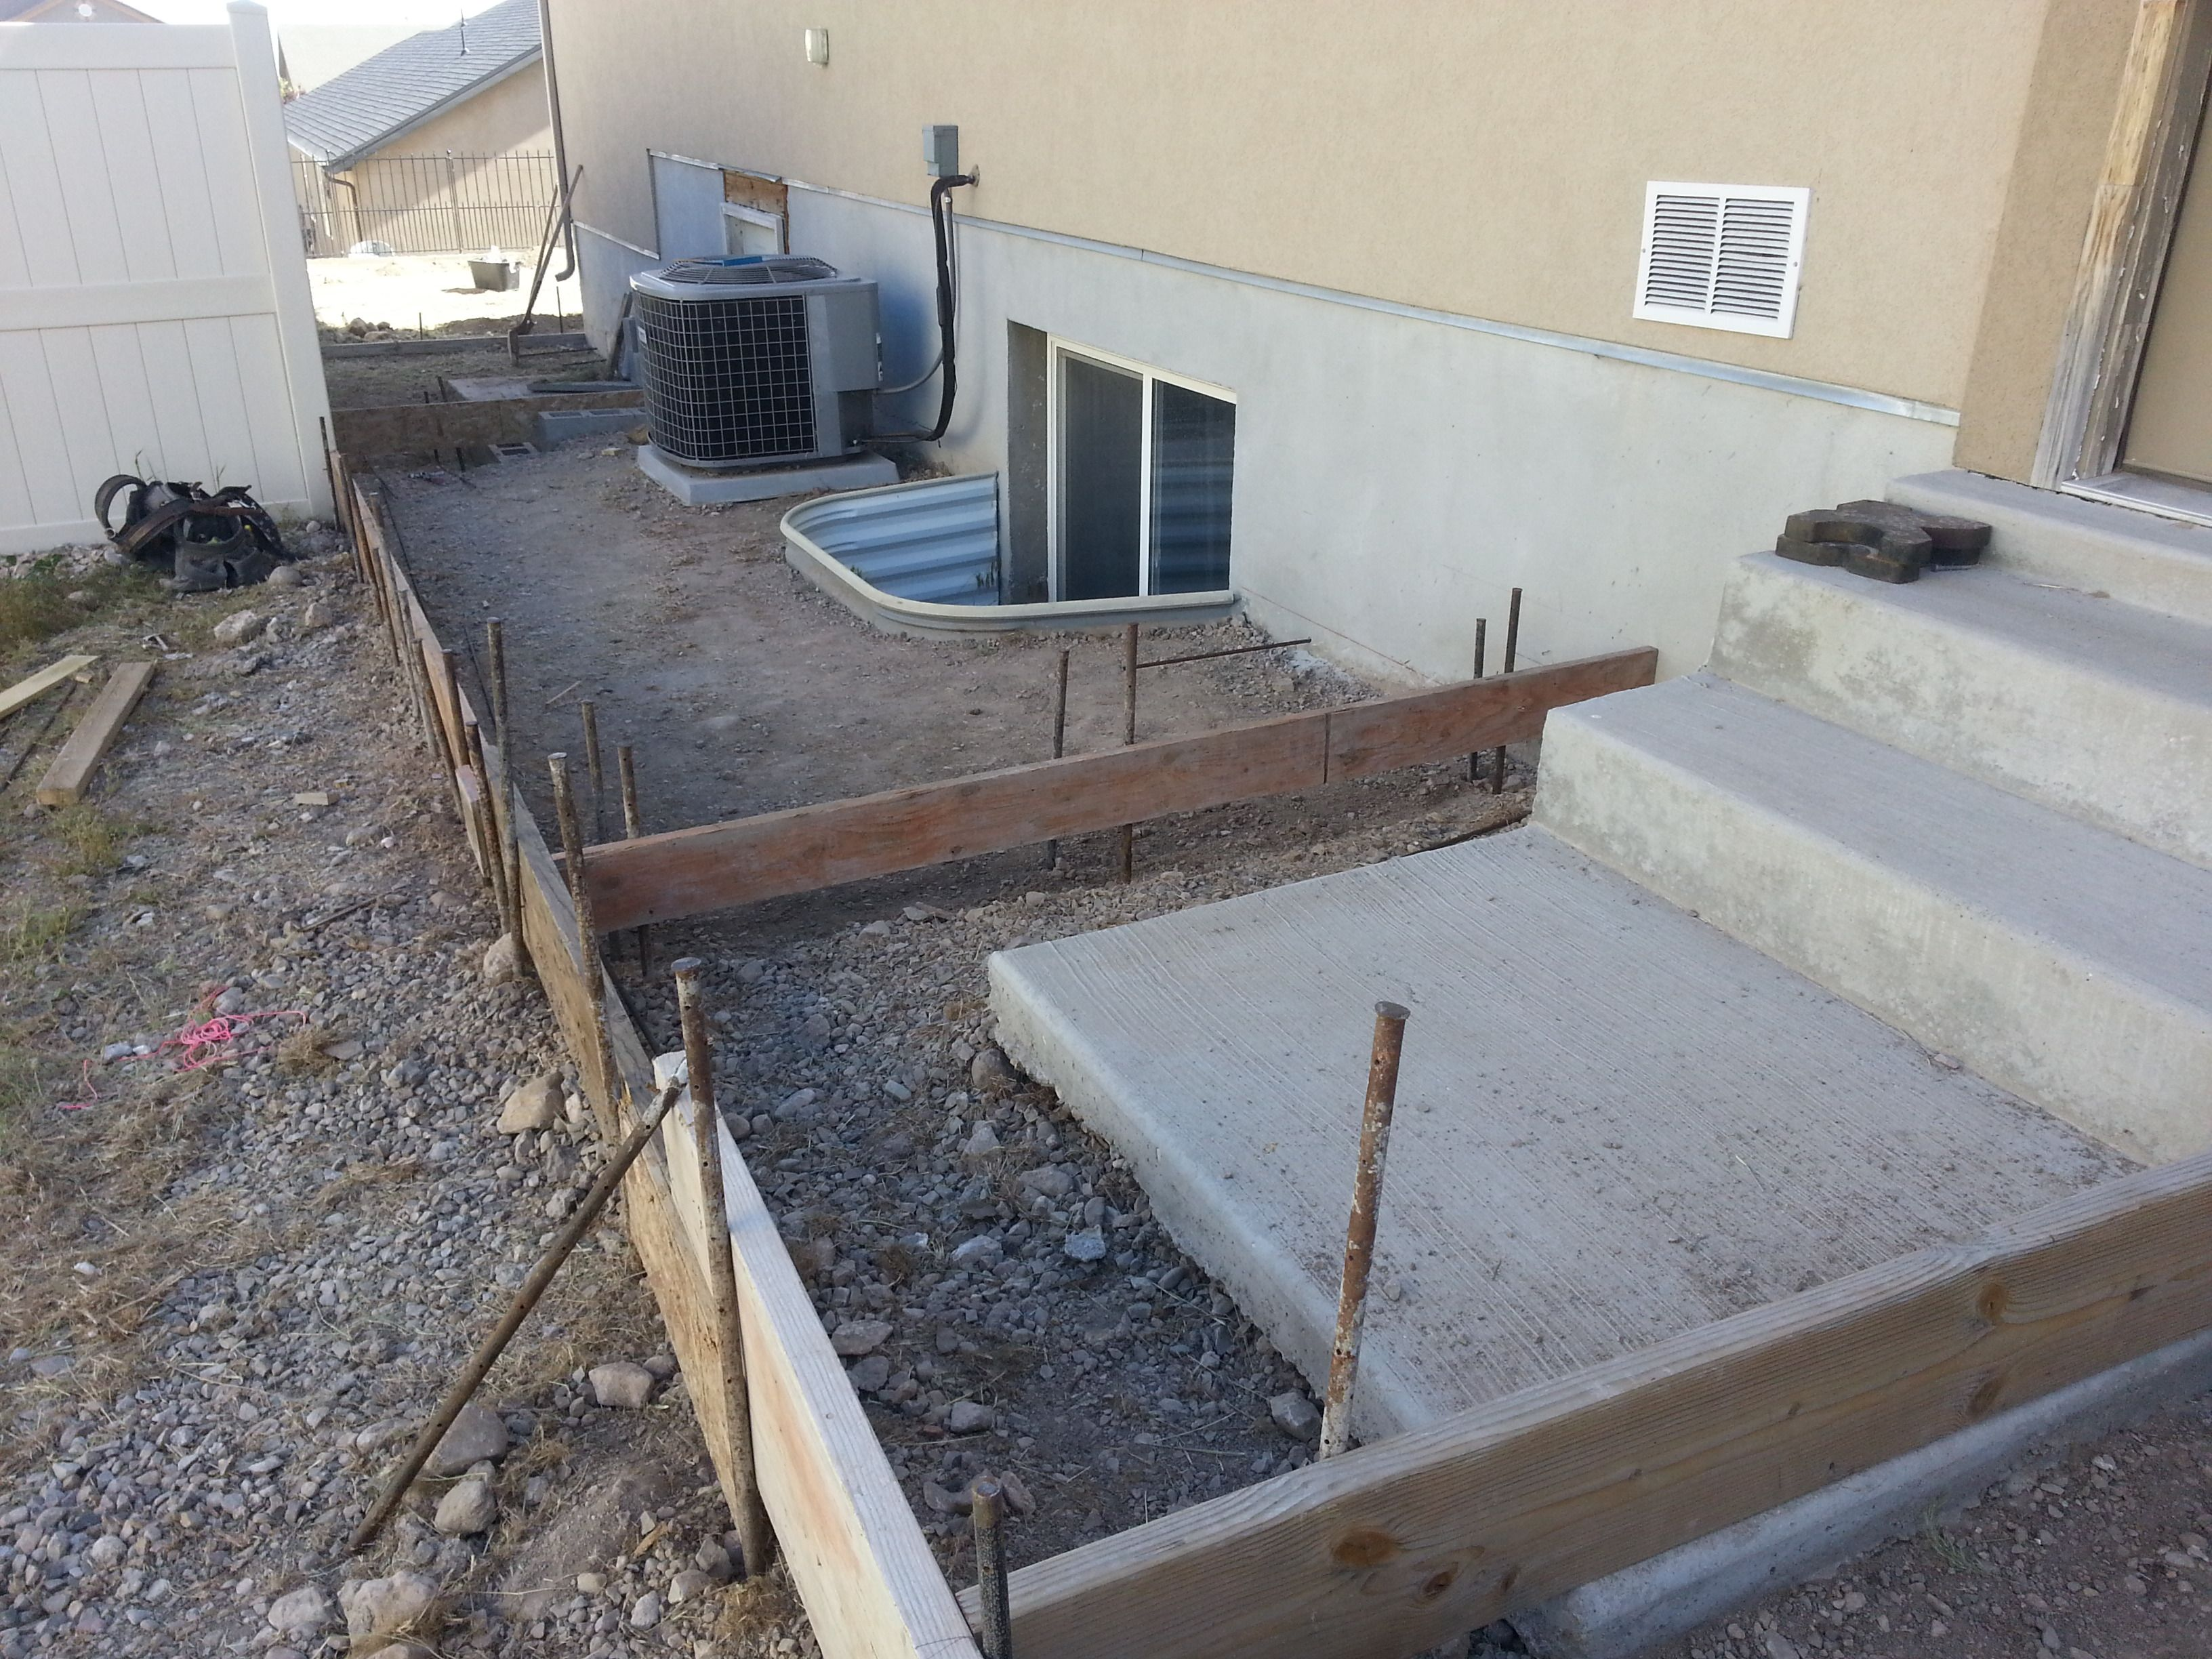 We also offer concrete work - expert forming and concrete finishing (broom finish or stamped and colored)